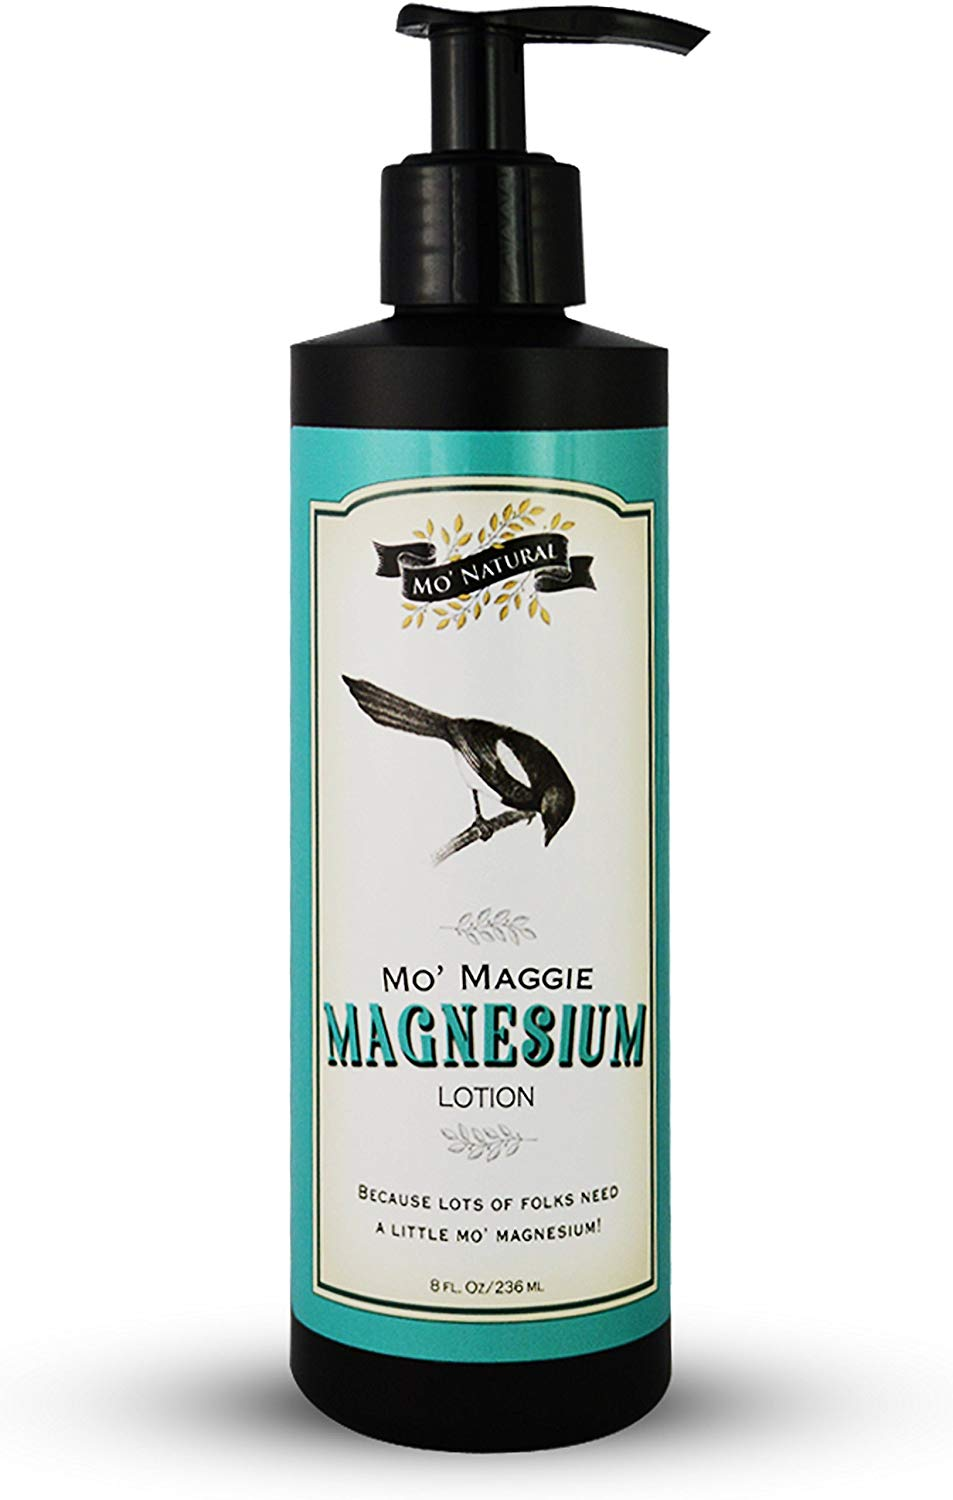 Mo' Natural Organic Magnesium Lotion